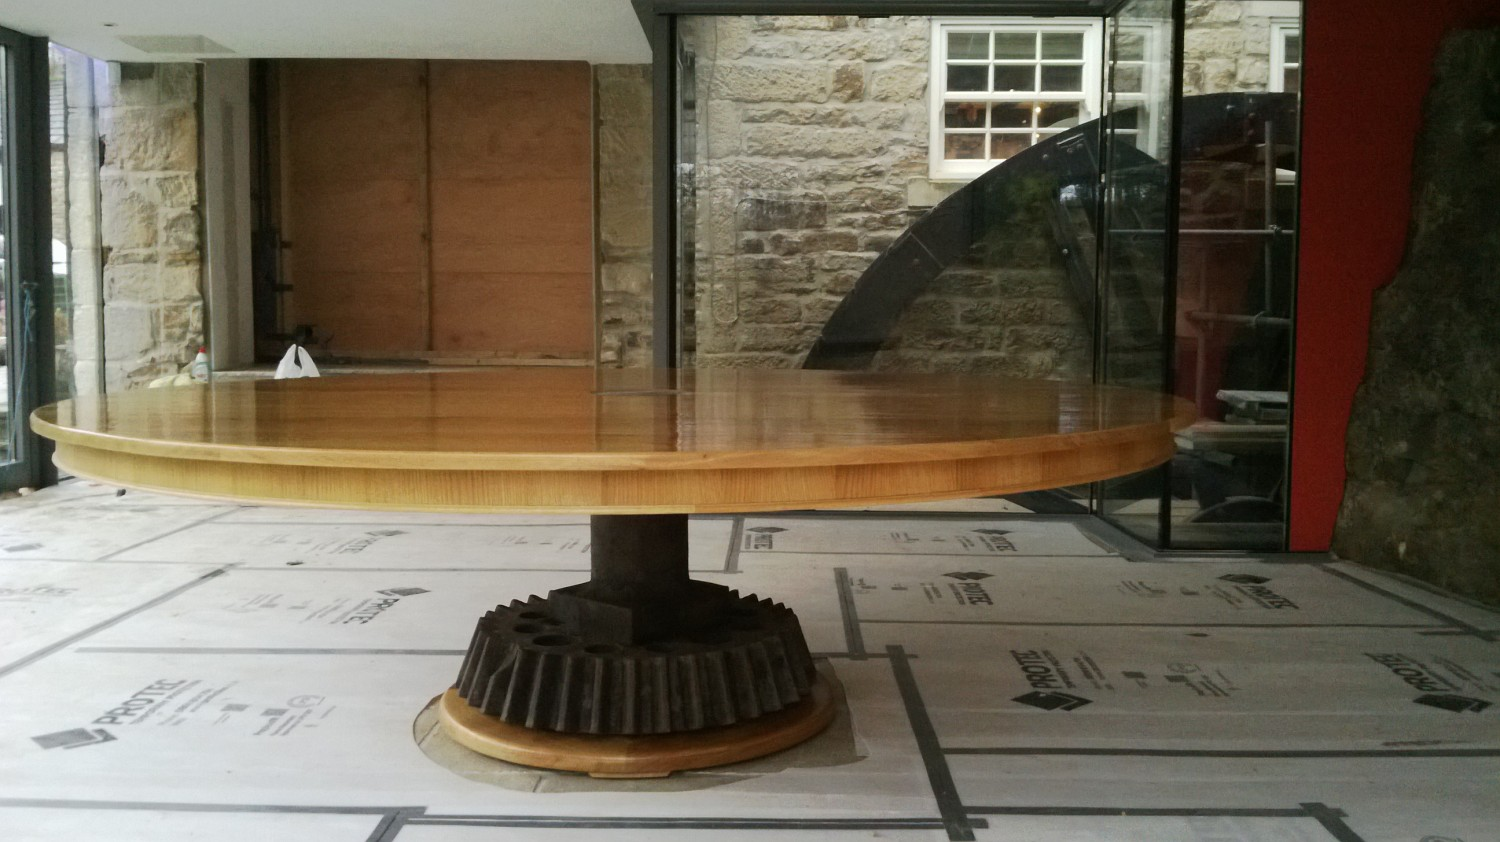 Table-Mill-table-D-in-place-with-mill-wheel-in-back